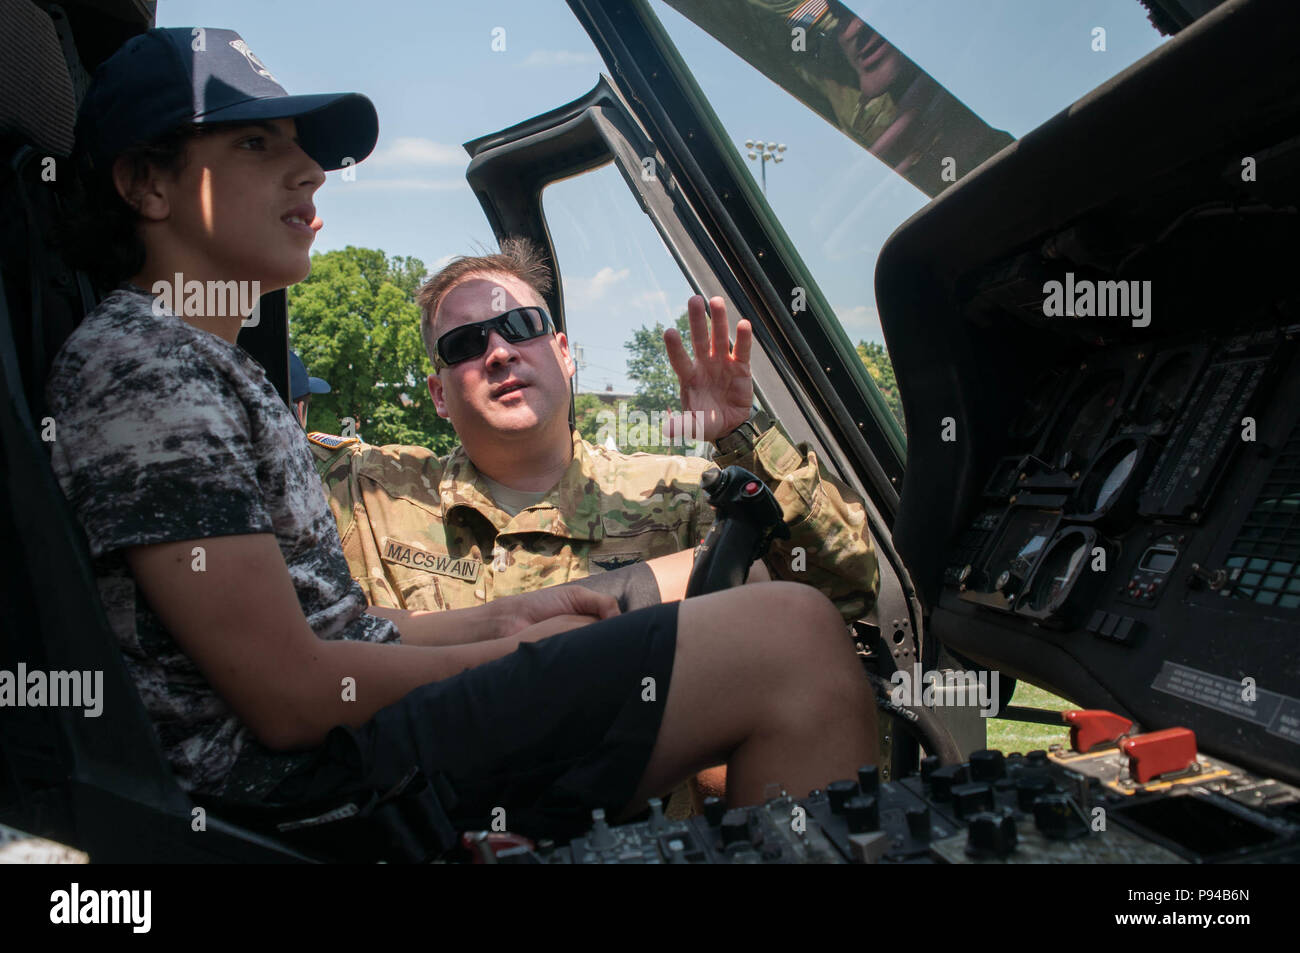 BOSTON – Army Chief Warrant Officer Danny MacSwain shows off